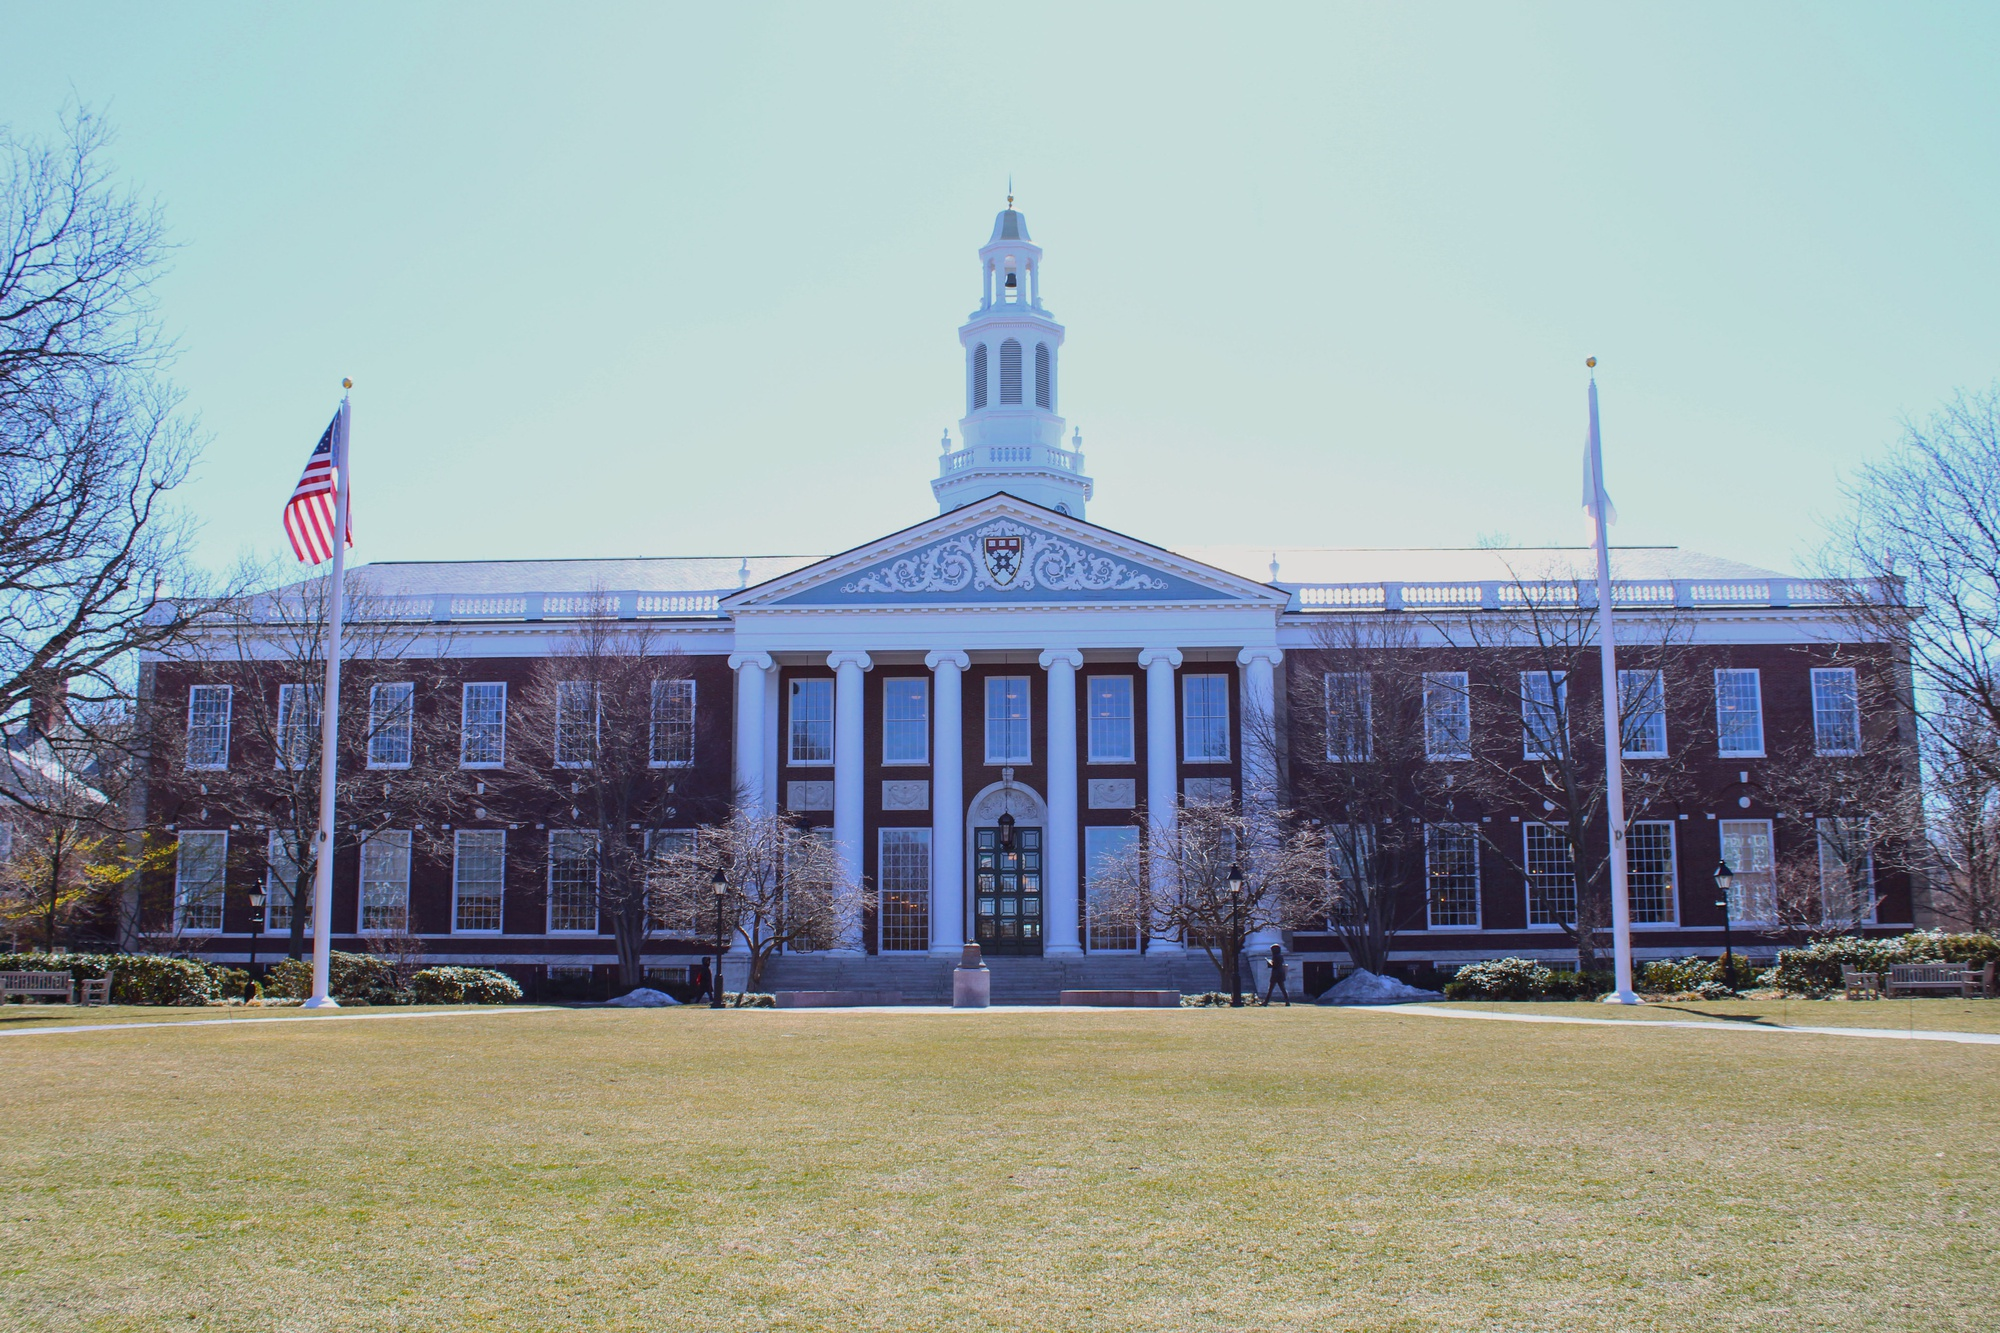 The Harvard Business School was one of two schools that the plaintiff of a federal lawsuit filed against Harvard applied to and was denied admission from.